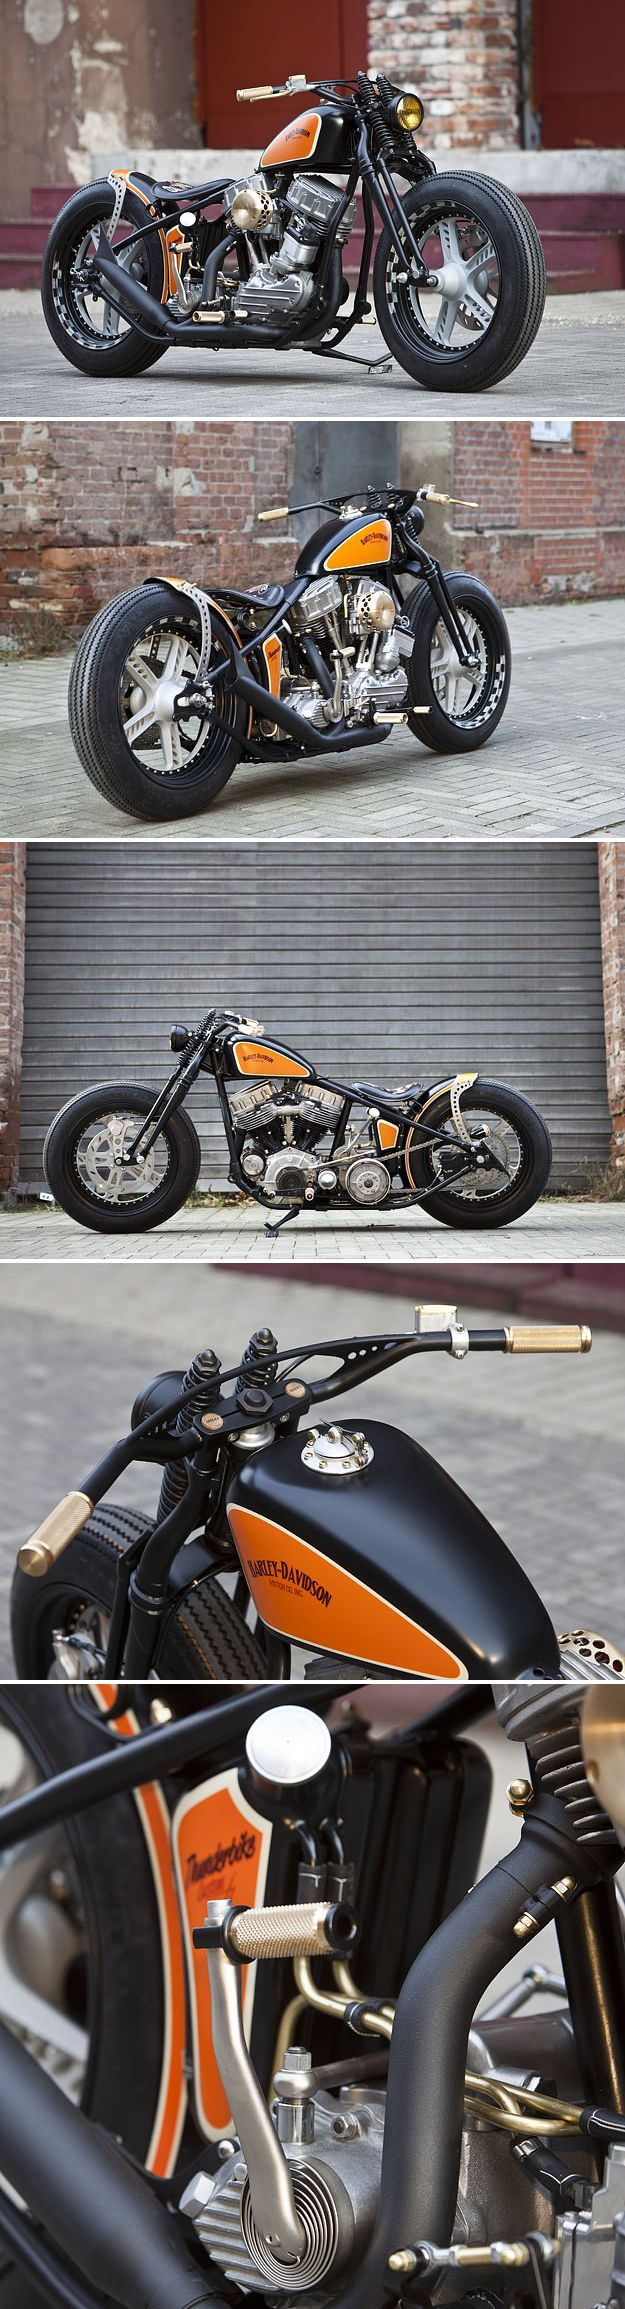 1951 HARLEY-DAVIDSON PANHEAD. Not a fan of some of the body work or the wheels, but that engine is killer.-SR